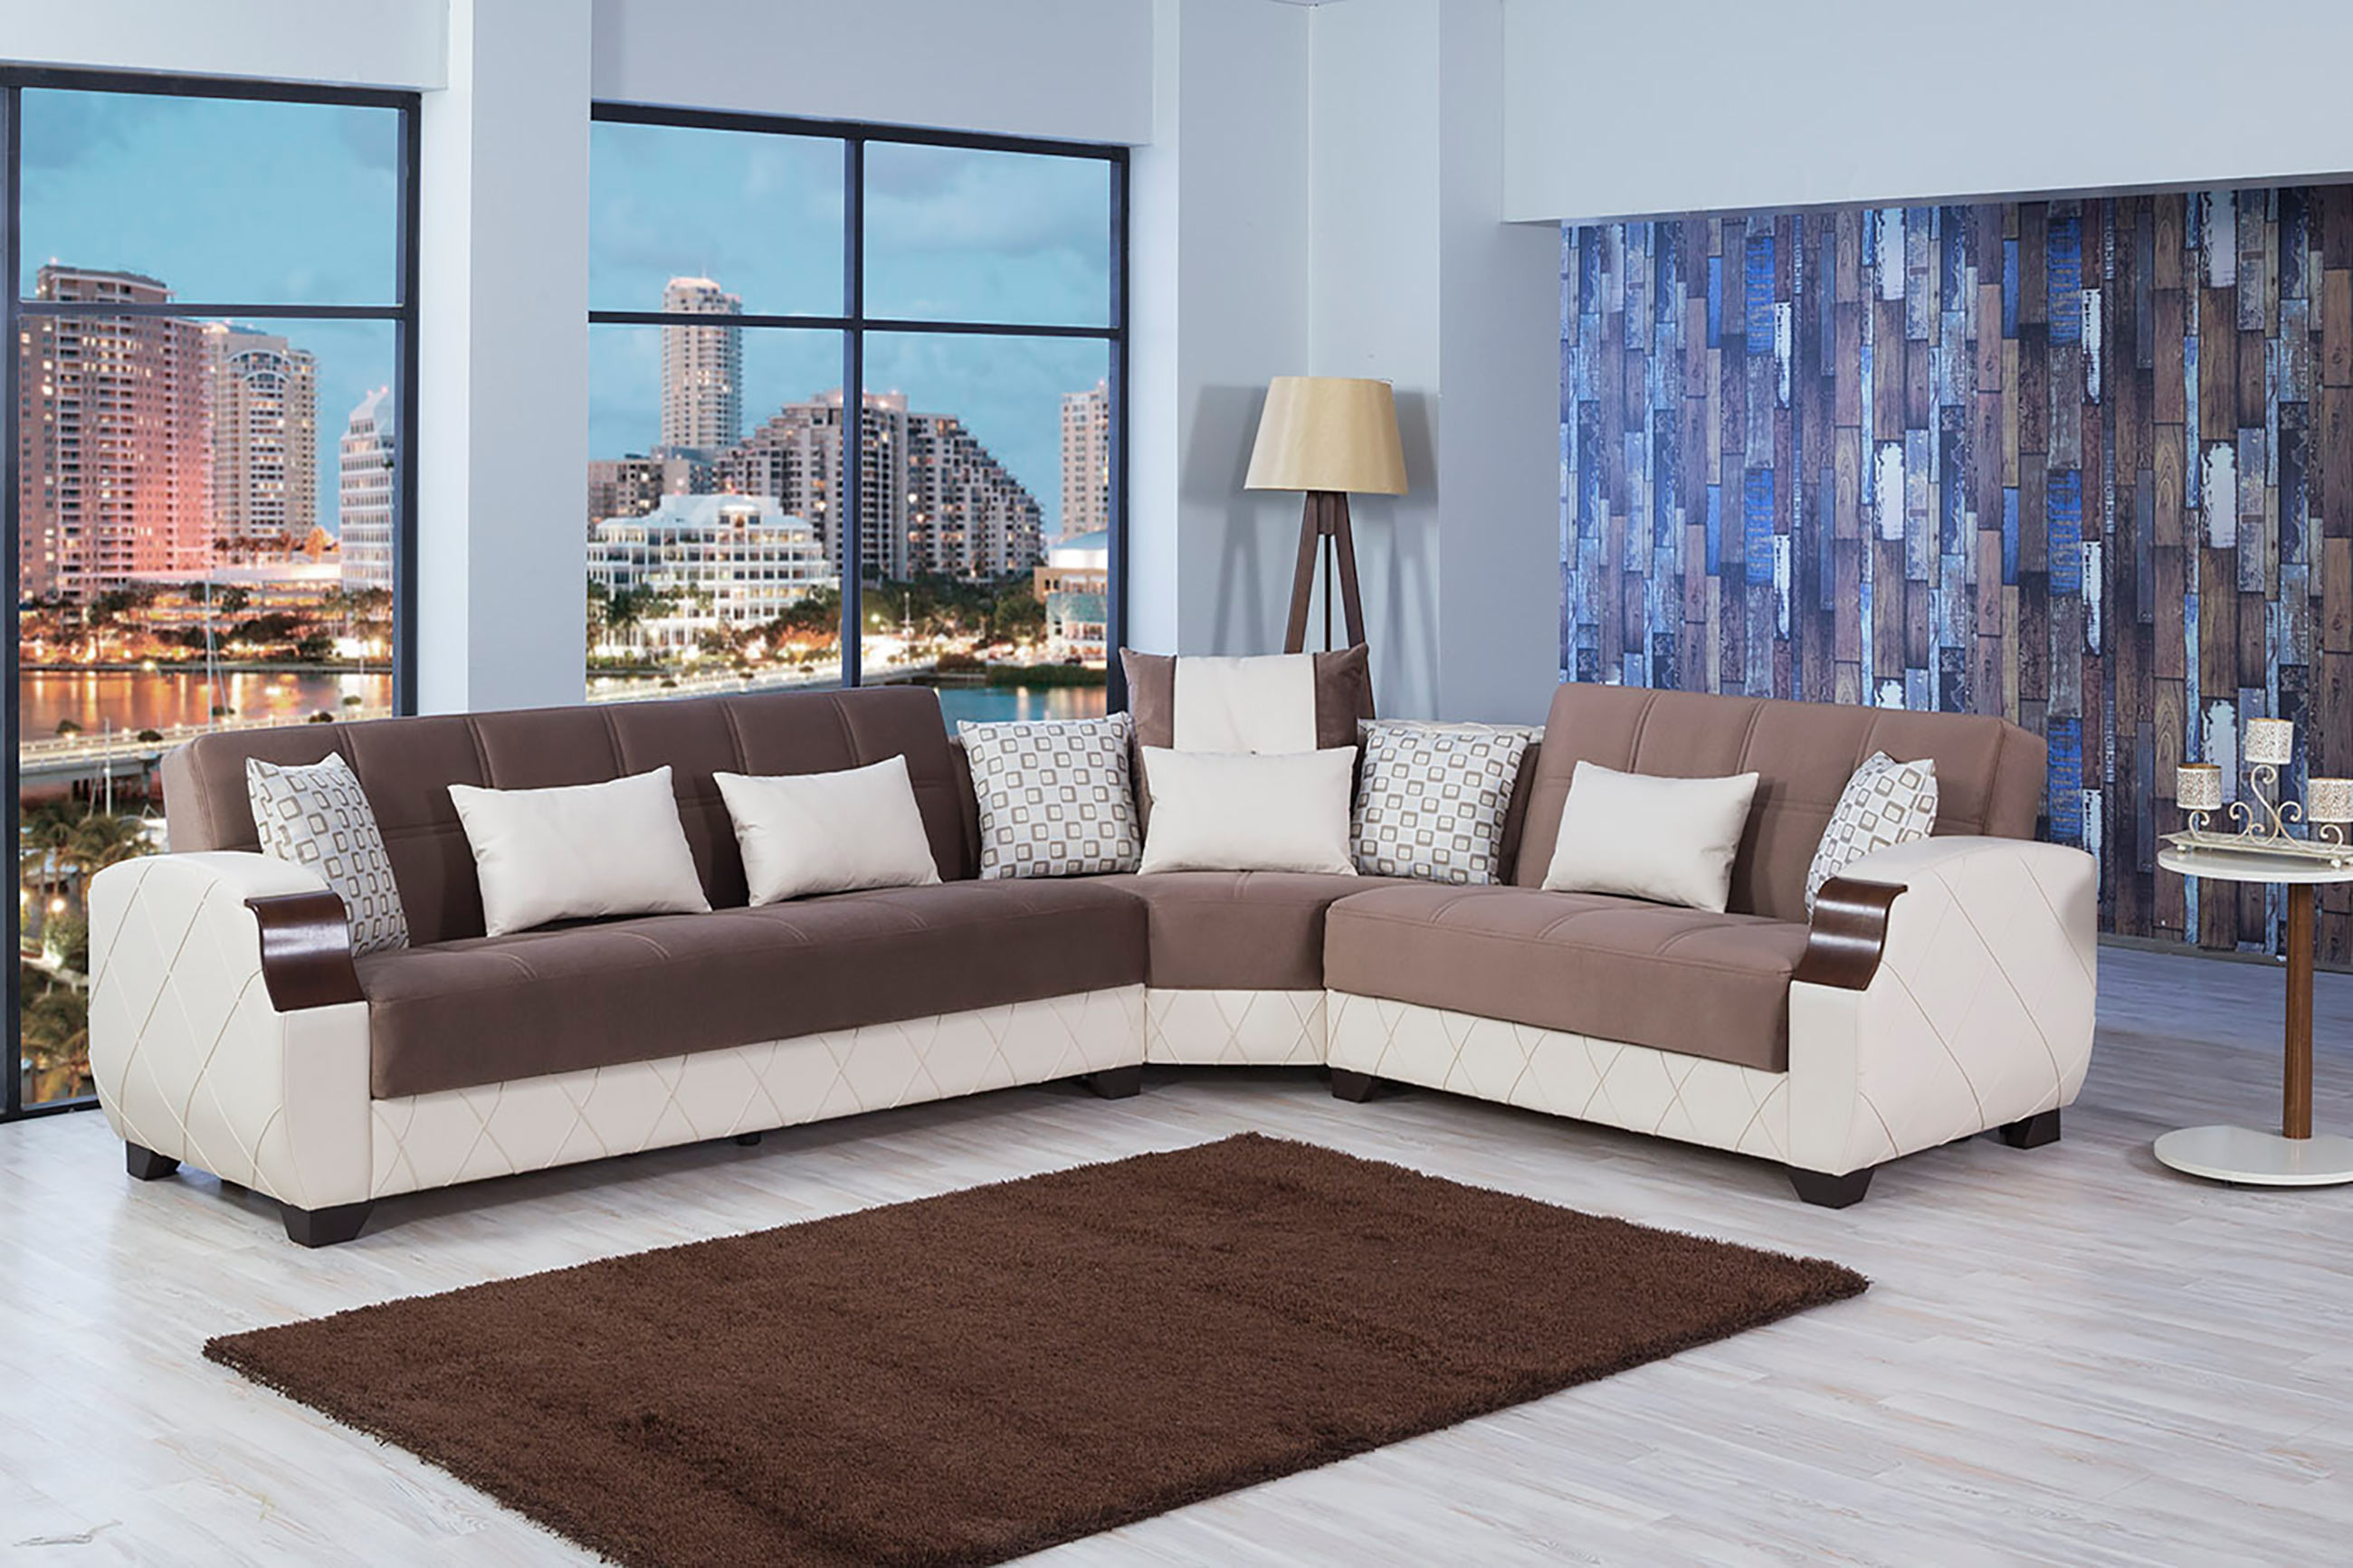 molina lyon brown sectional sofa by casamode brown sectional